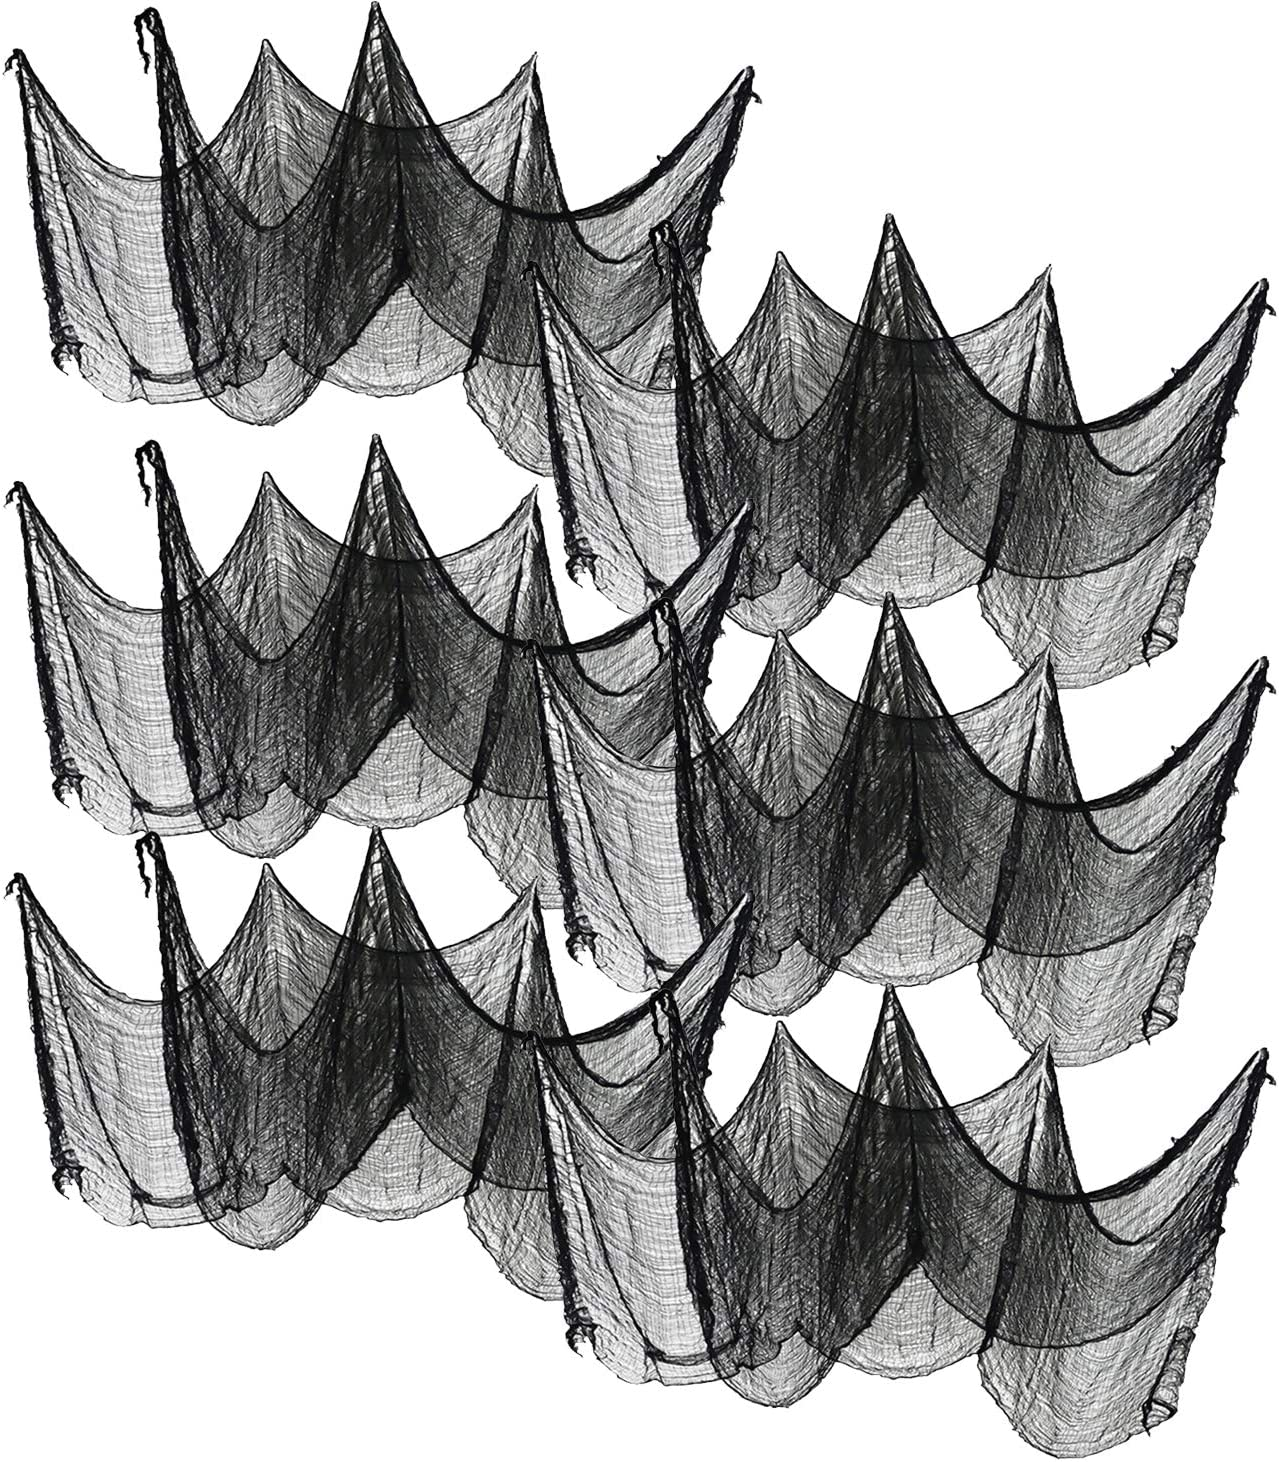 6 Pack 31.5 x 94.5 Inch Black Halloween Creepy Cloth -Spooky Scary Gauze Cheesecloth Cotton Muslin Cloths for Haunted House Halloween Party Supplies Doorway Outdoors Yard Decoration